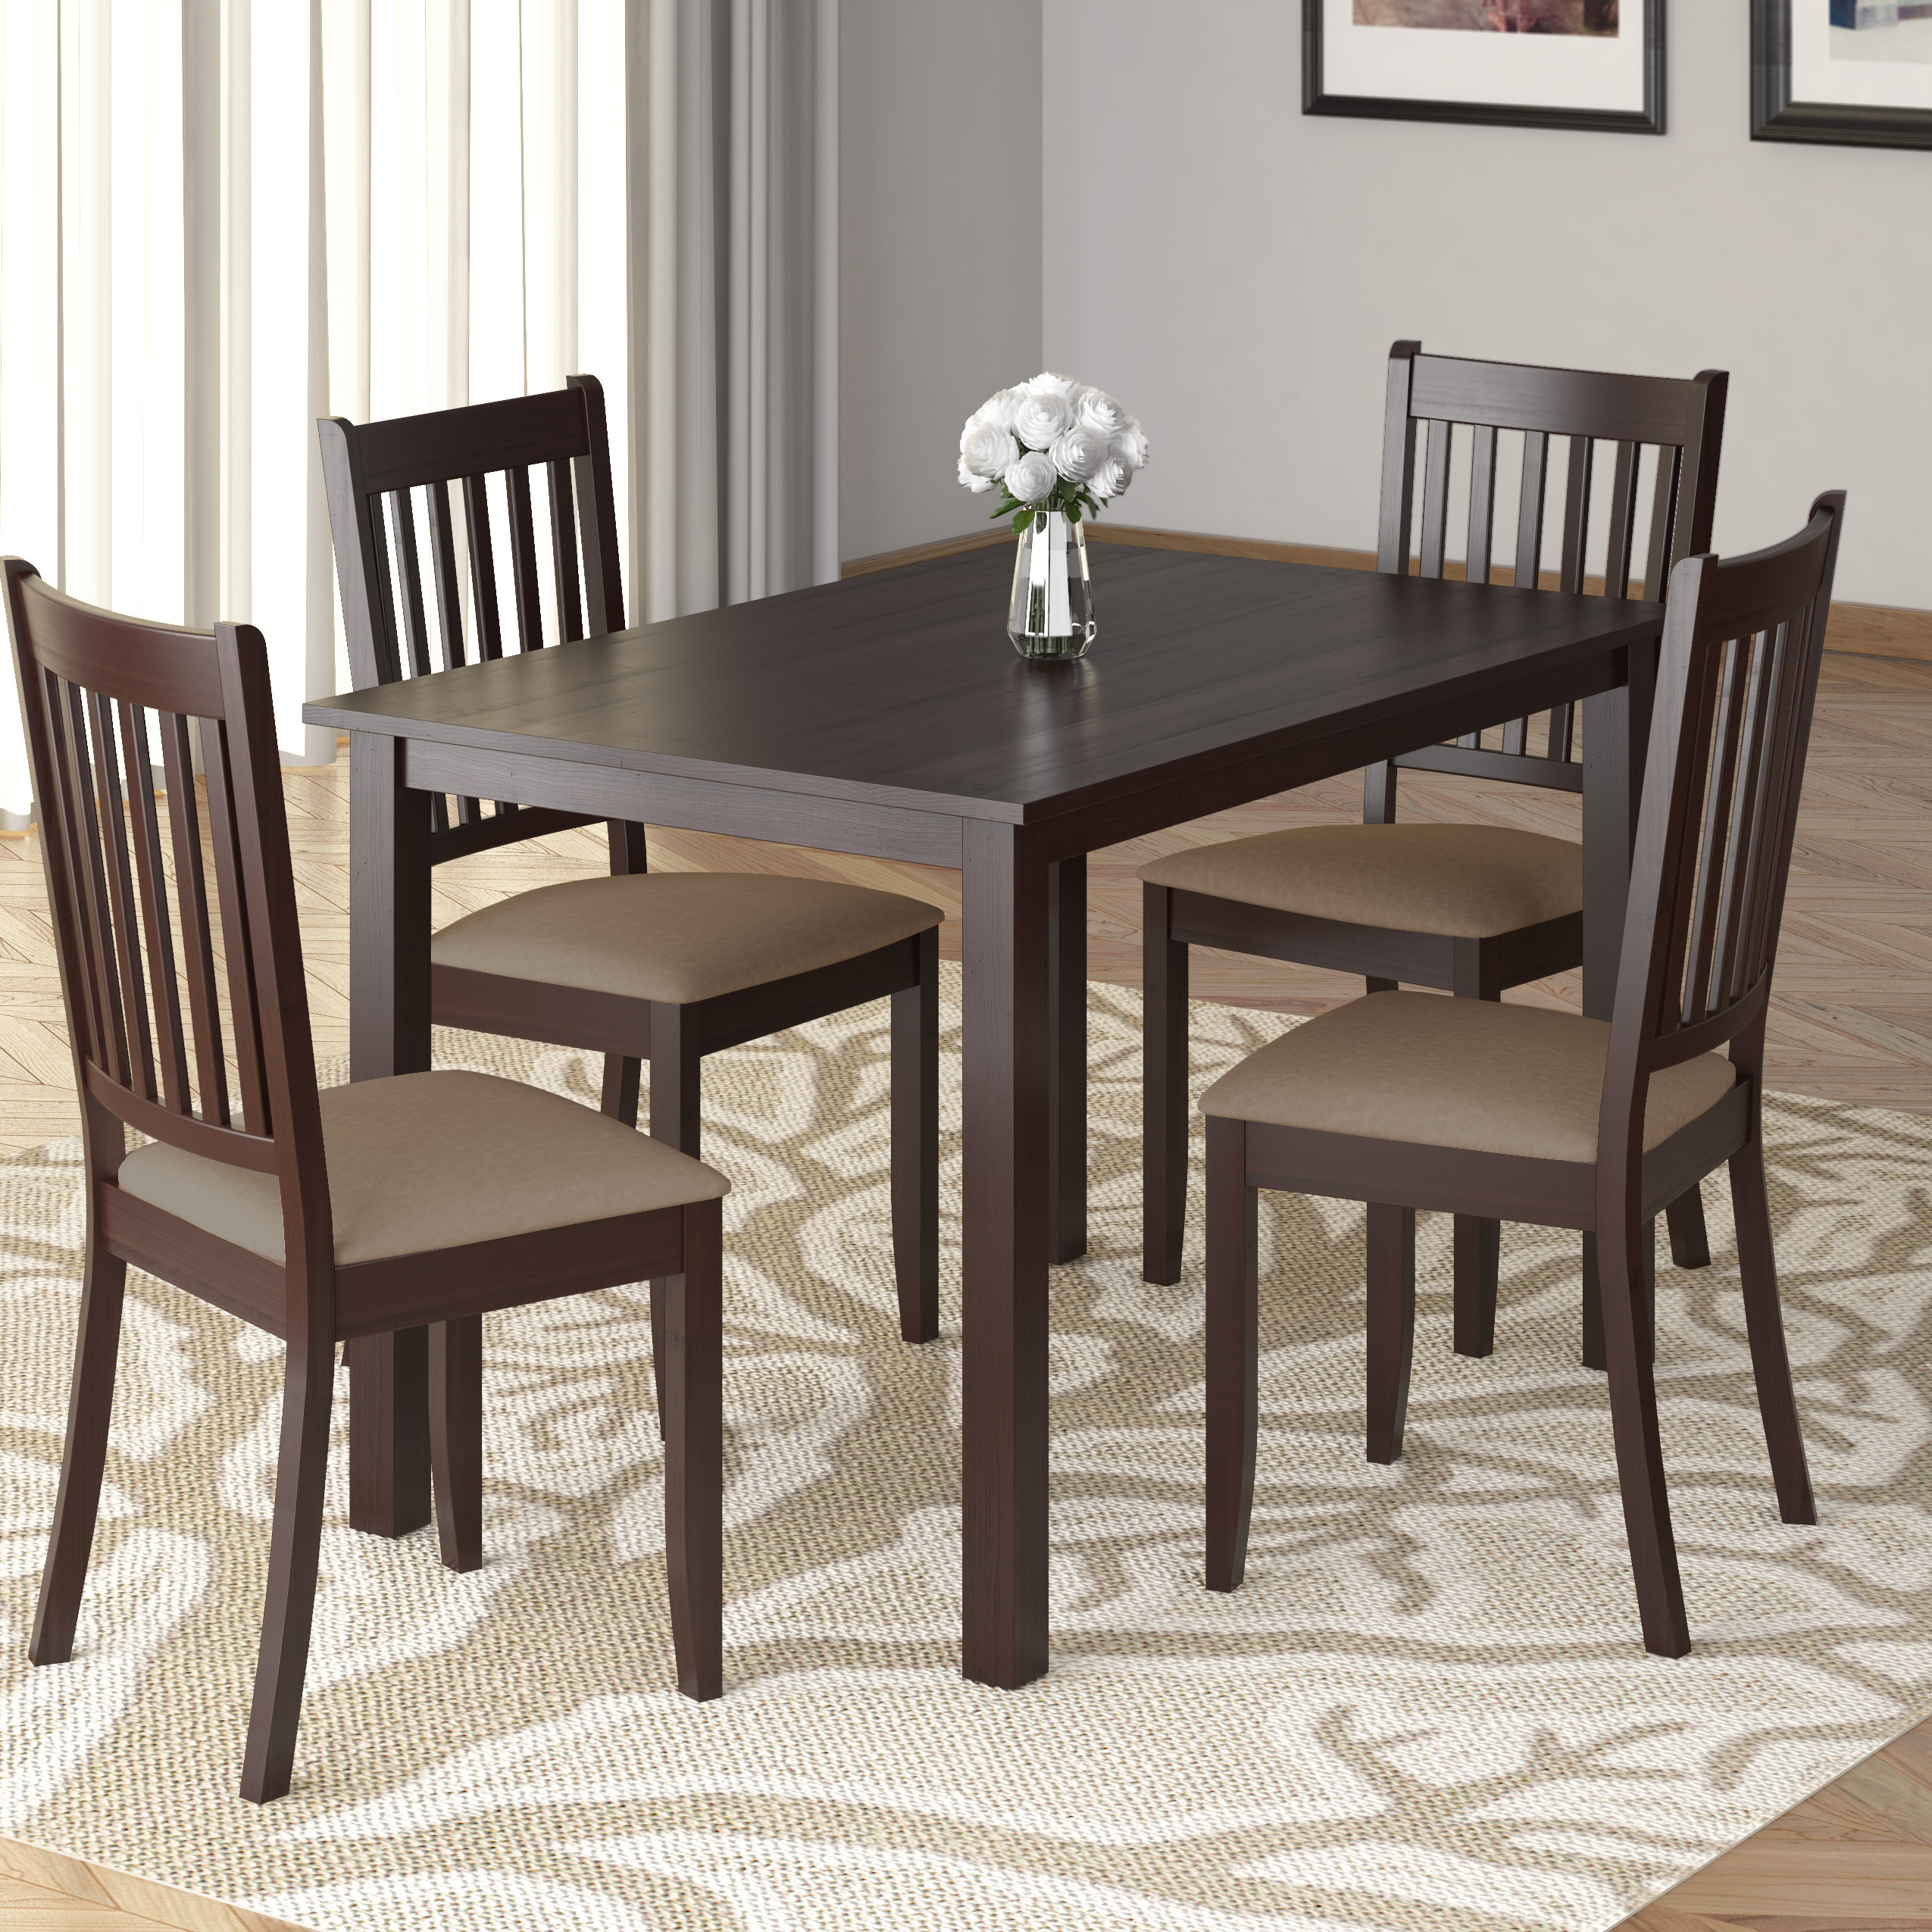 Current Atwood Transitional Square Dining Tables Inside Corliving Atwood 5Pc Dining Set, With Beige Microfiber Seats (View 18 of 25)